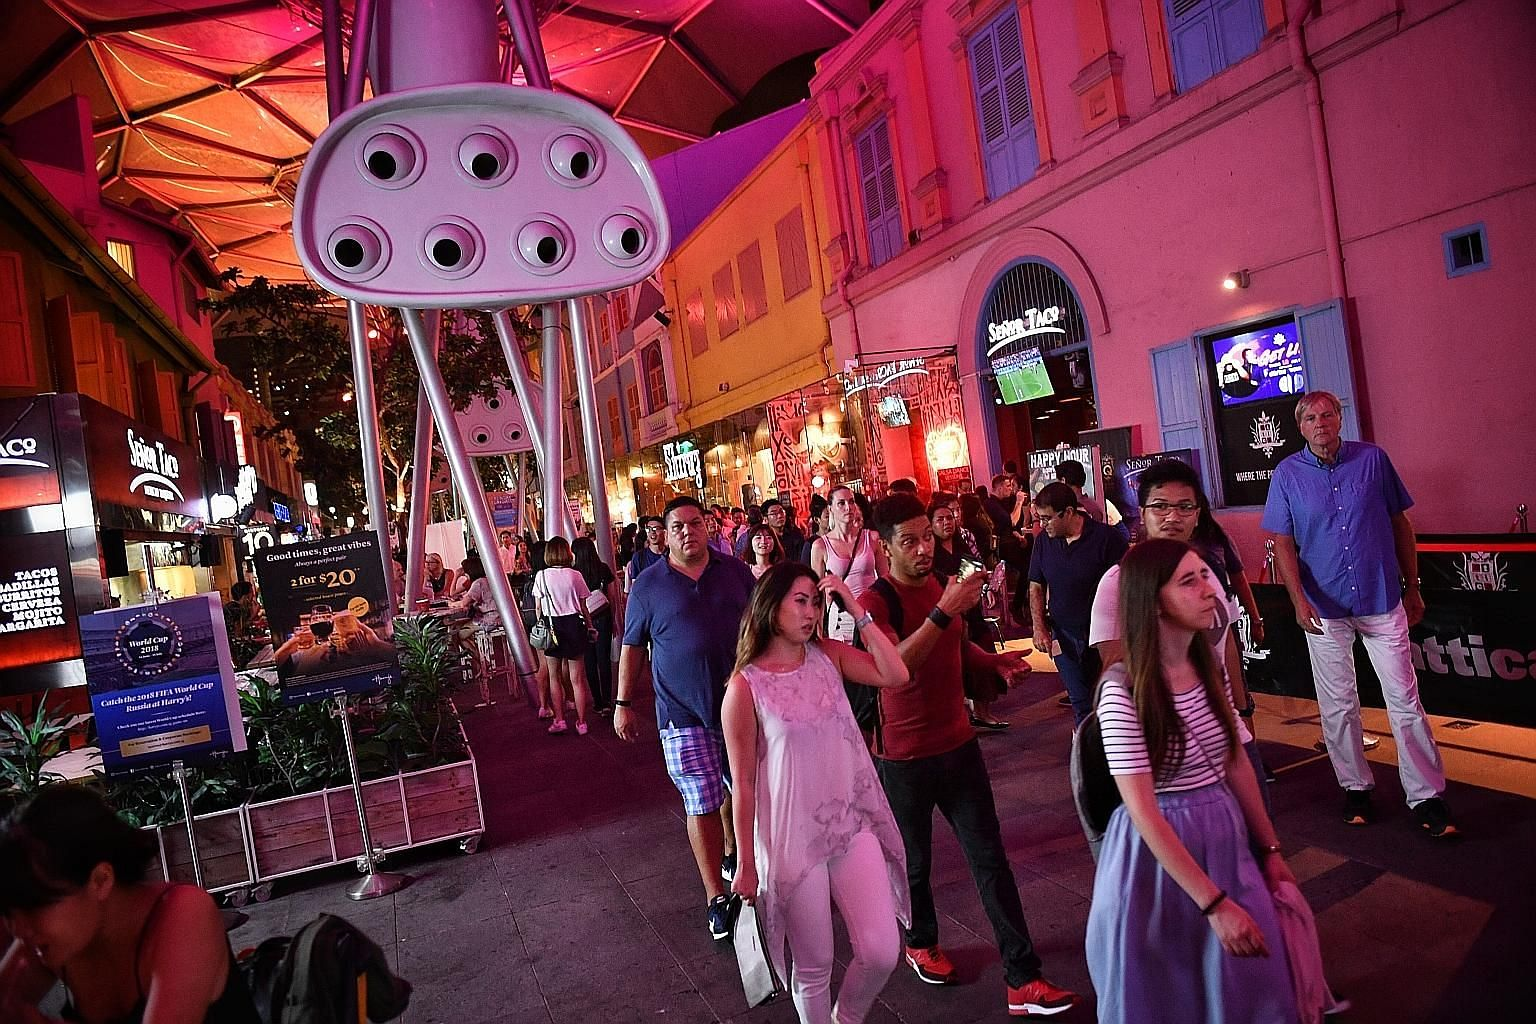 Since liquor licensing hours in Clarke Quay were curtailed, the area has seen a drop in public order offences from 317 in 2013 to 111 in 2016, police figures show. However, the figures have crept back up, with operators in the area attributing this t